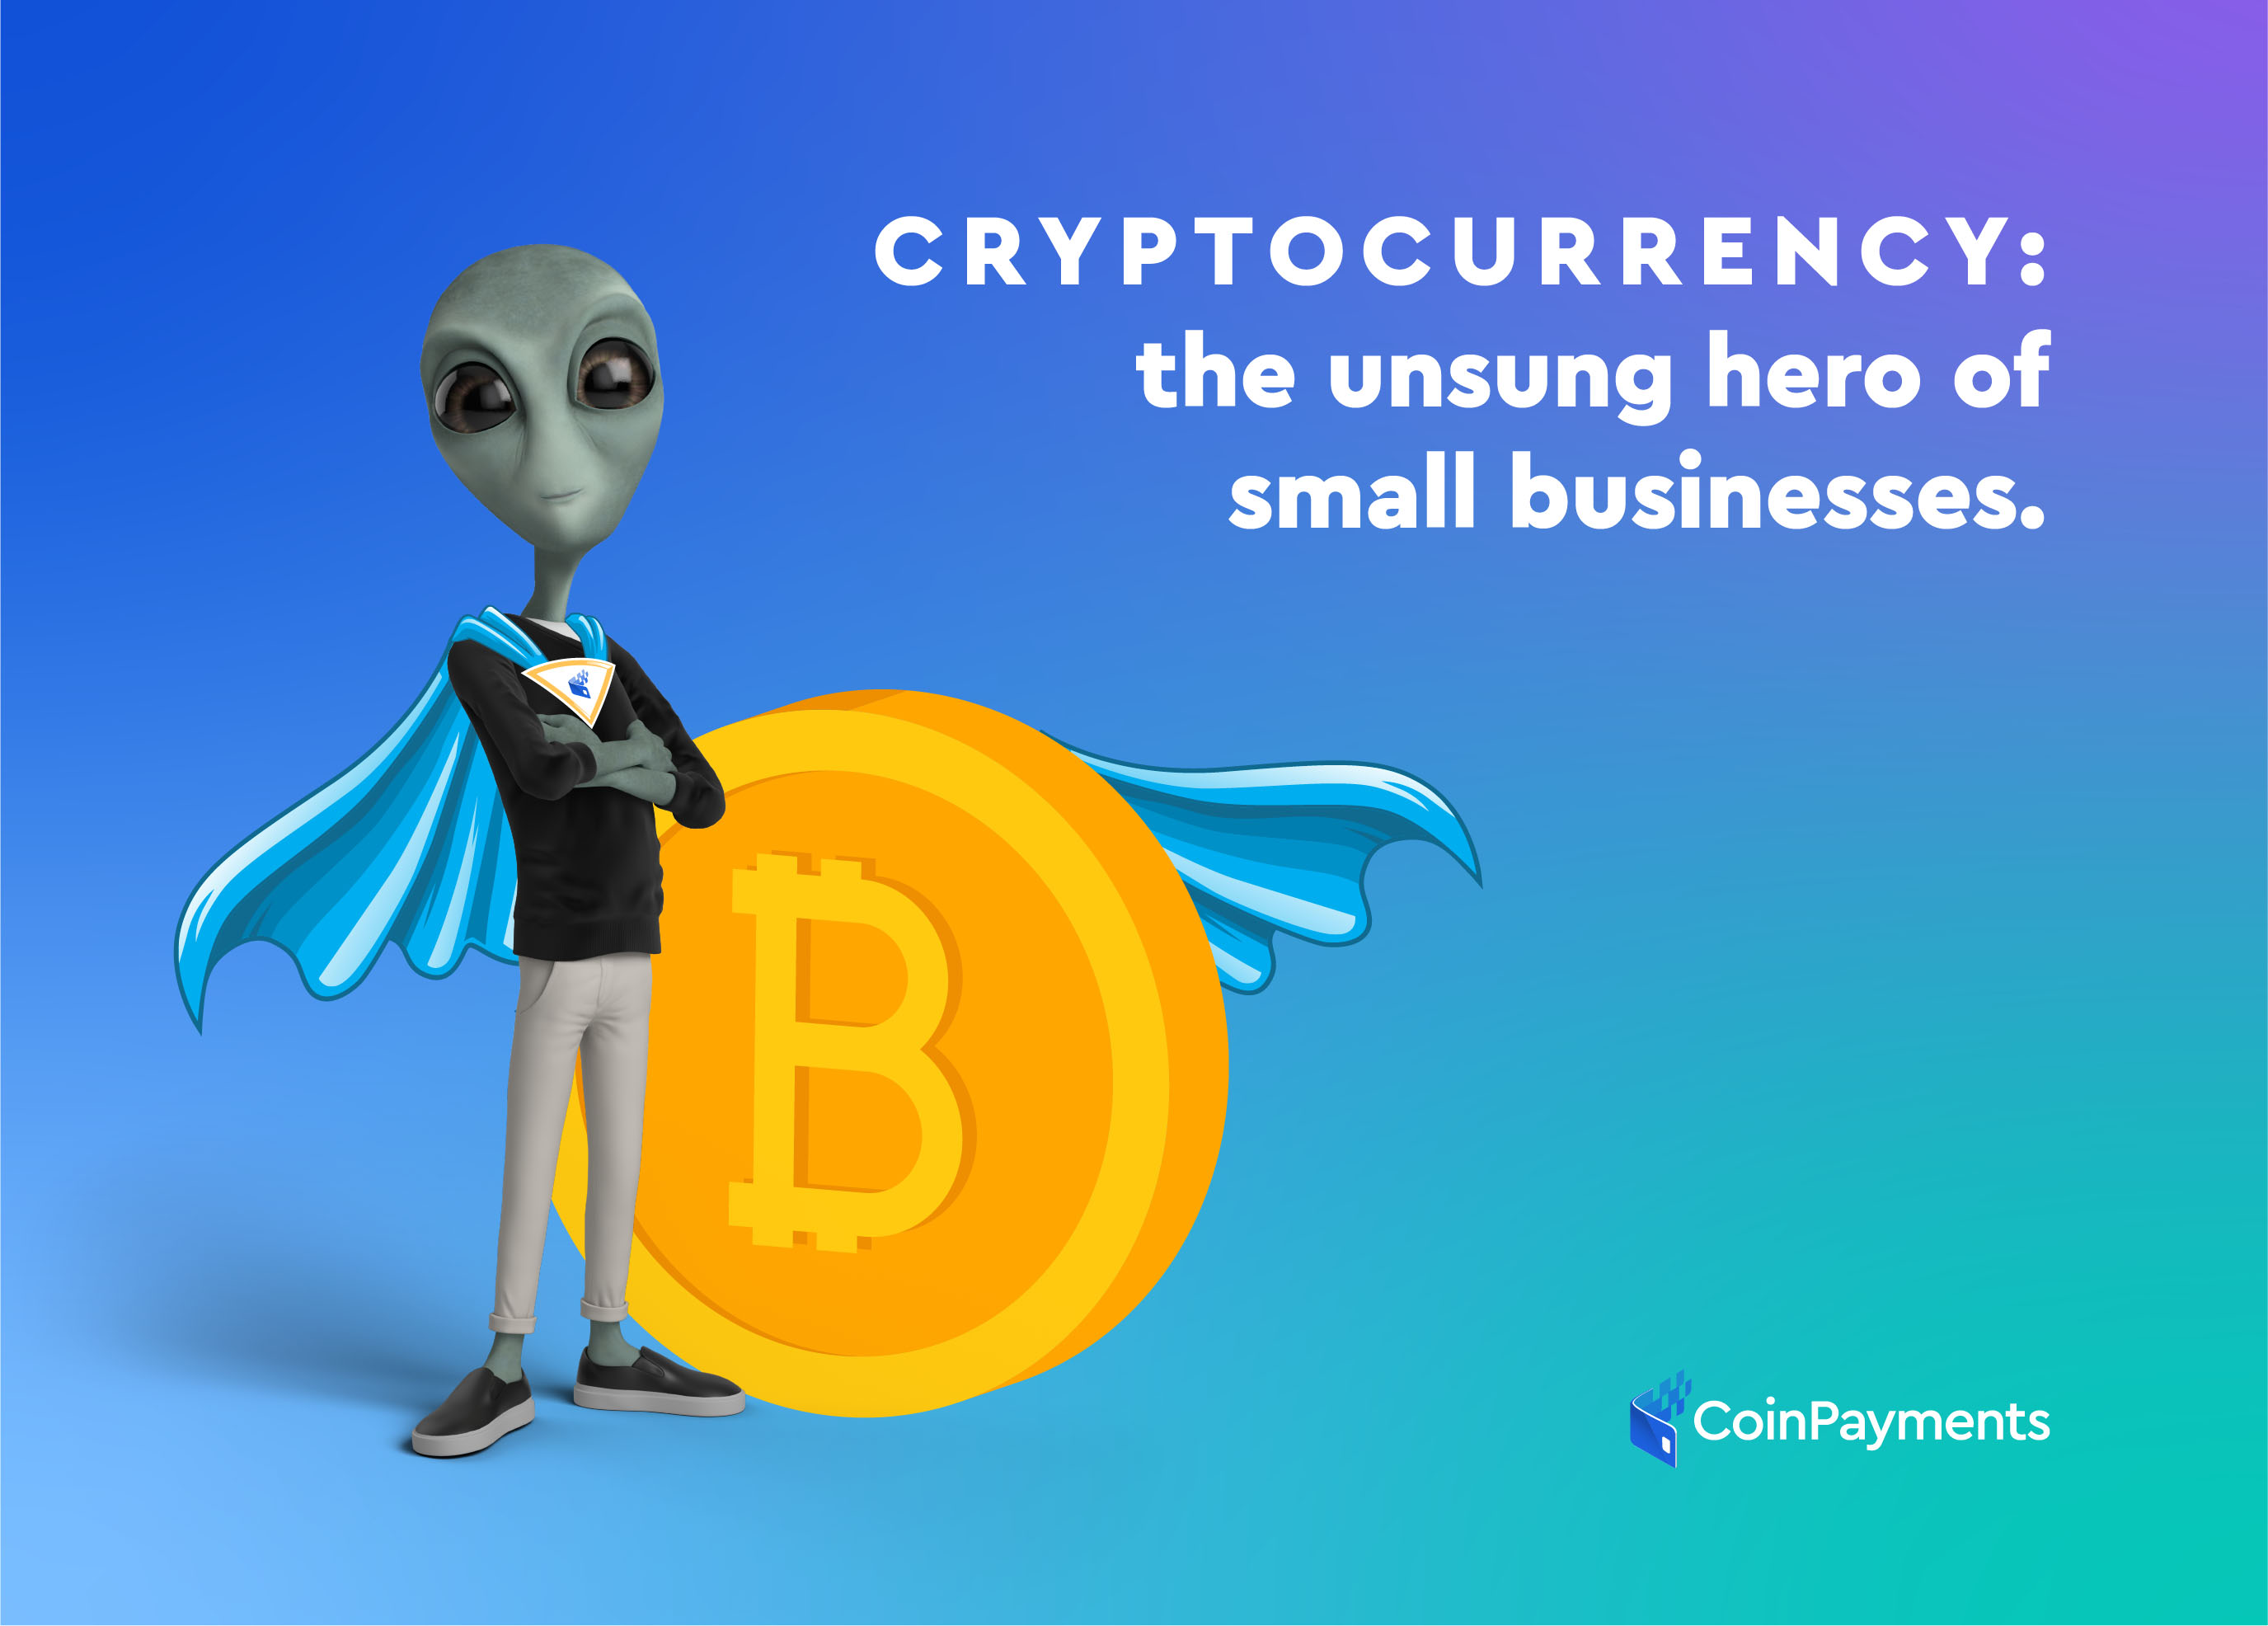 Author: CoinPayments